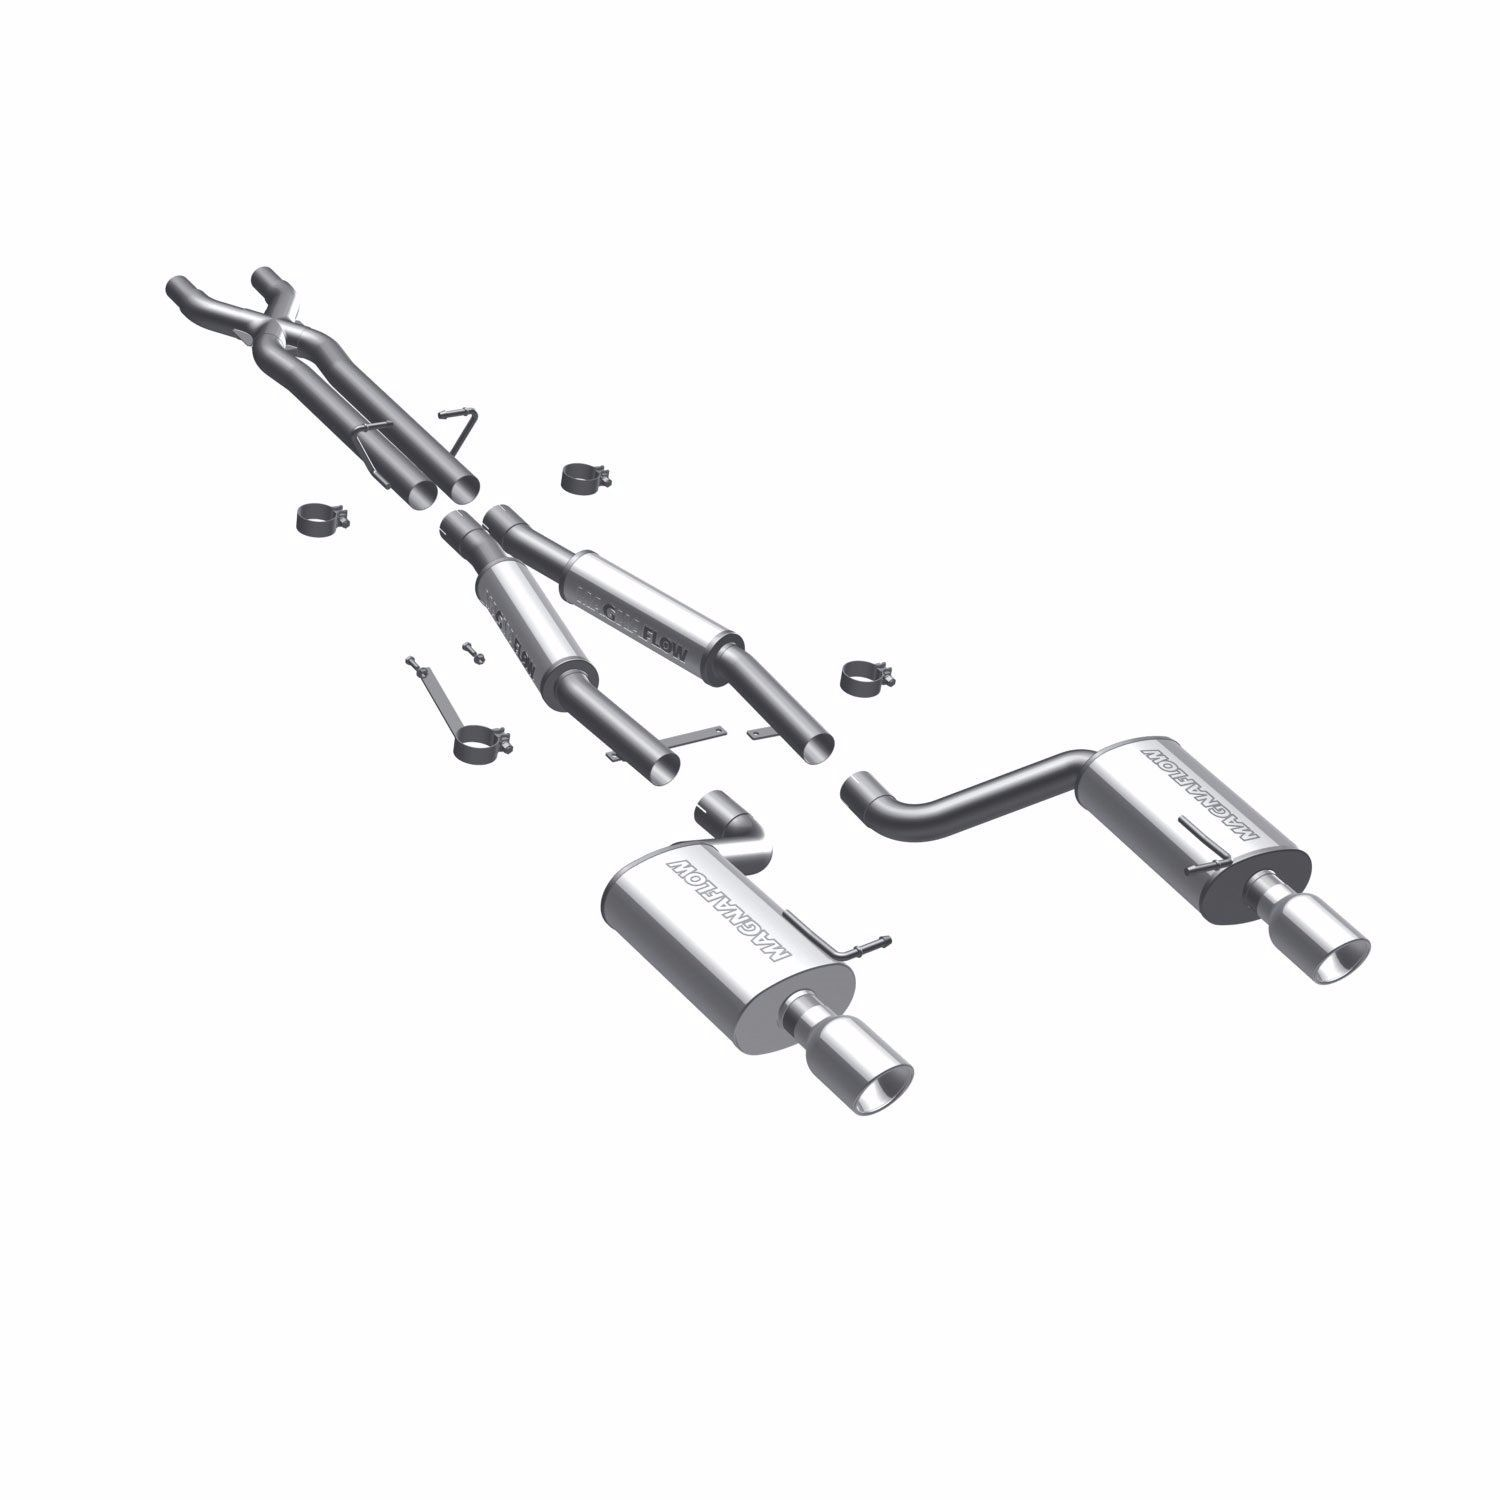 Magnaflow Touring Series Cat Back Exhaust